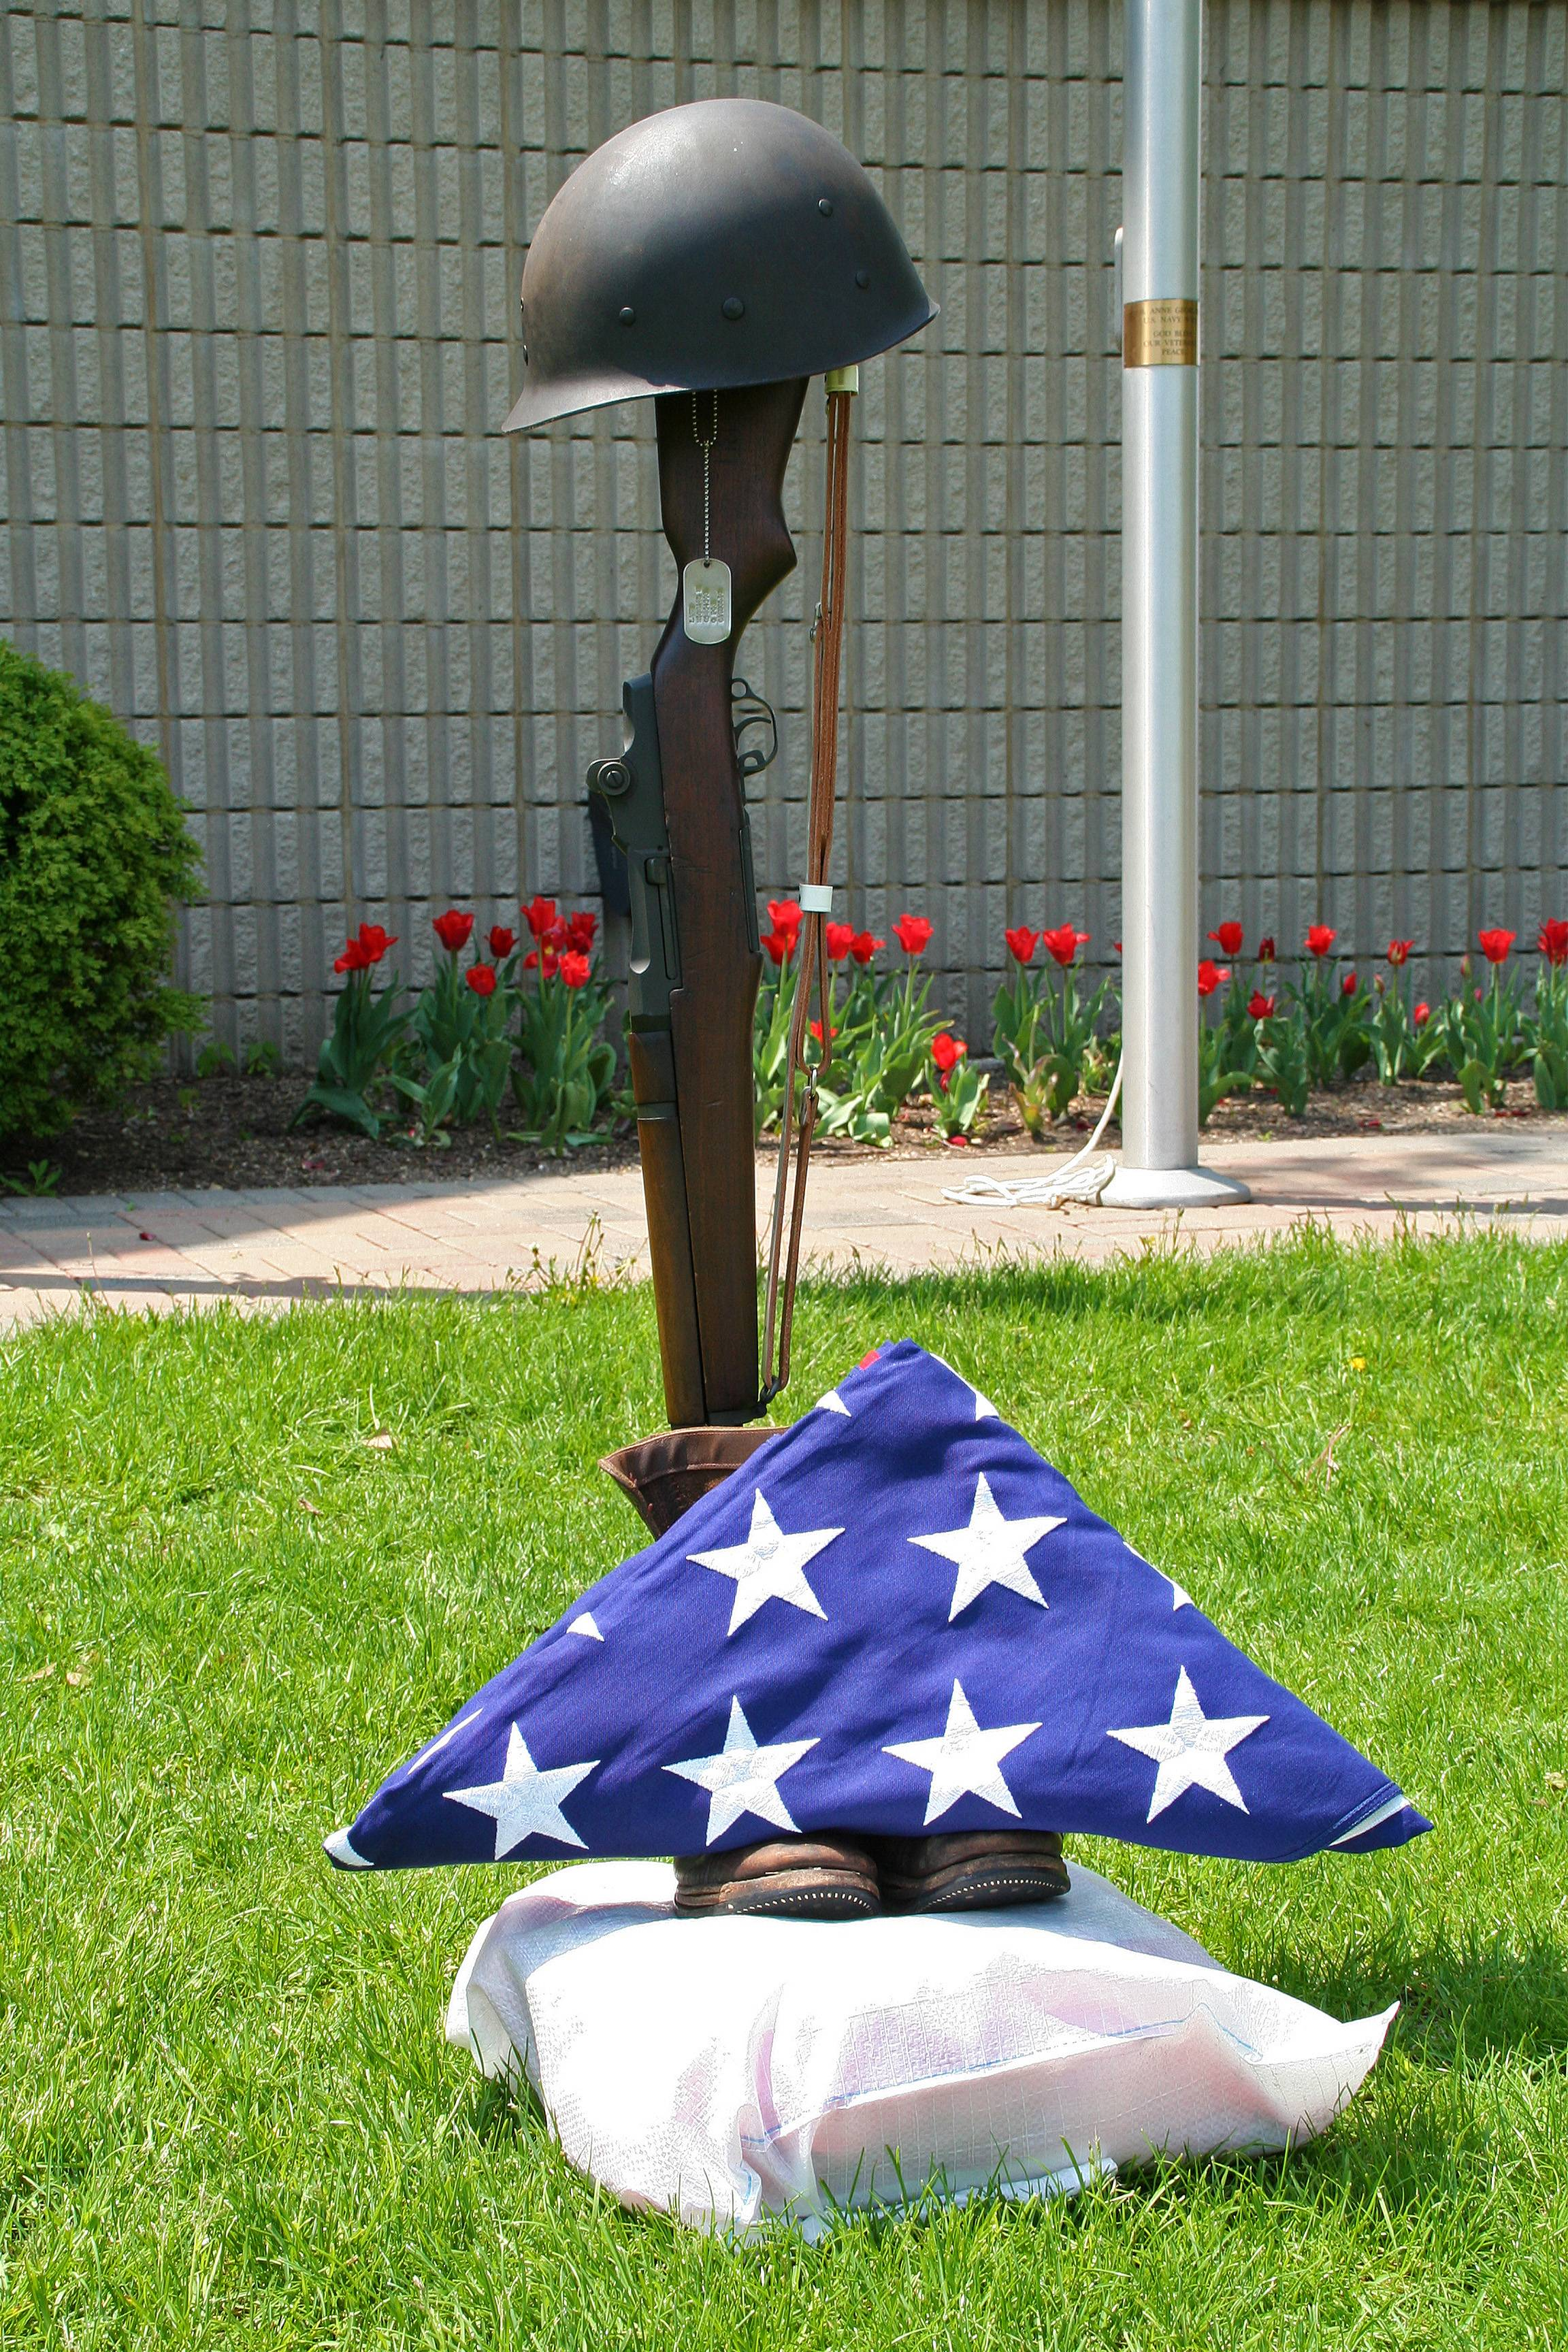 The Battlefield Monument, built by Sergeant Richard E. Ohman from a rifle, dog tags, helmet, boots, and the American Flag, at the Memorial Day Ceremony at the Lake Park Memorial Pavilion on May 26.